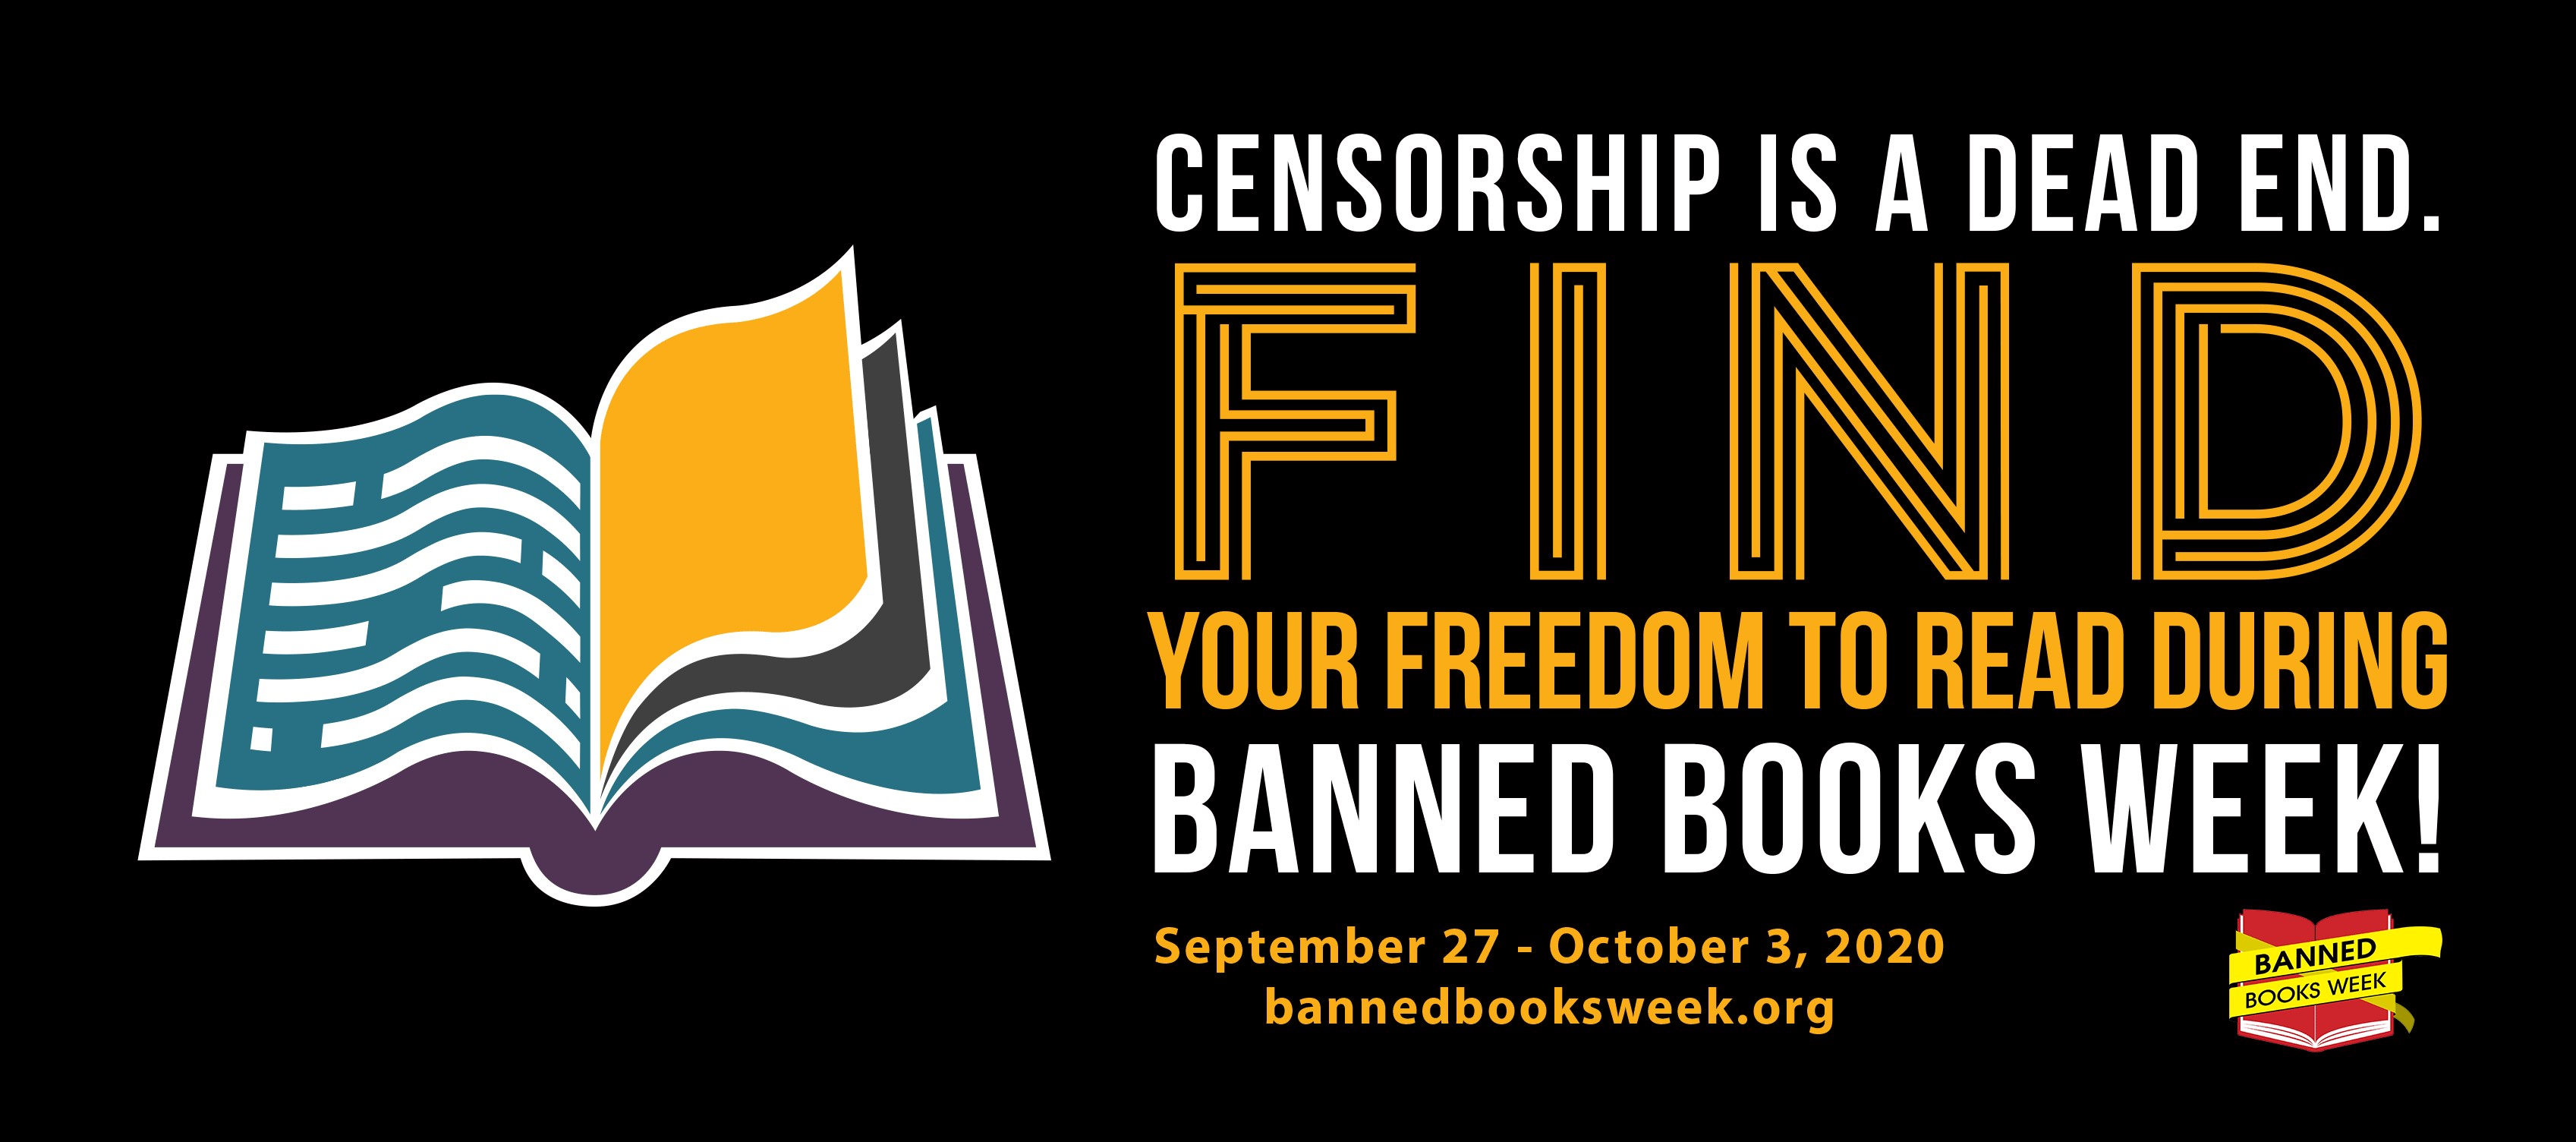 Censorship is a dead end. Find your freedom to read during banned books week! September 27 to October 3, 2020. banned books week dot org